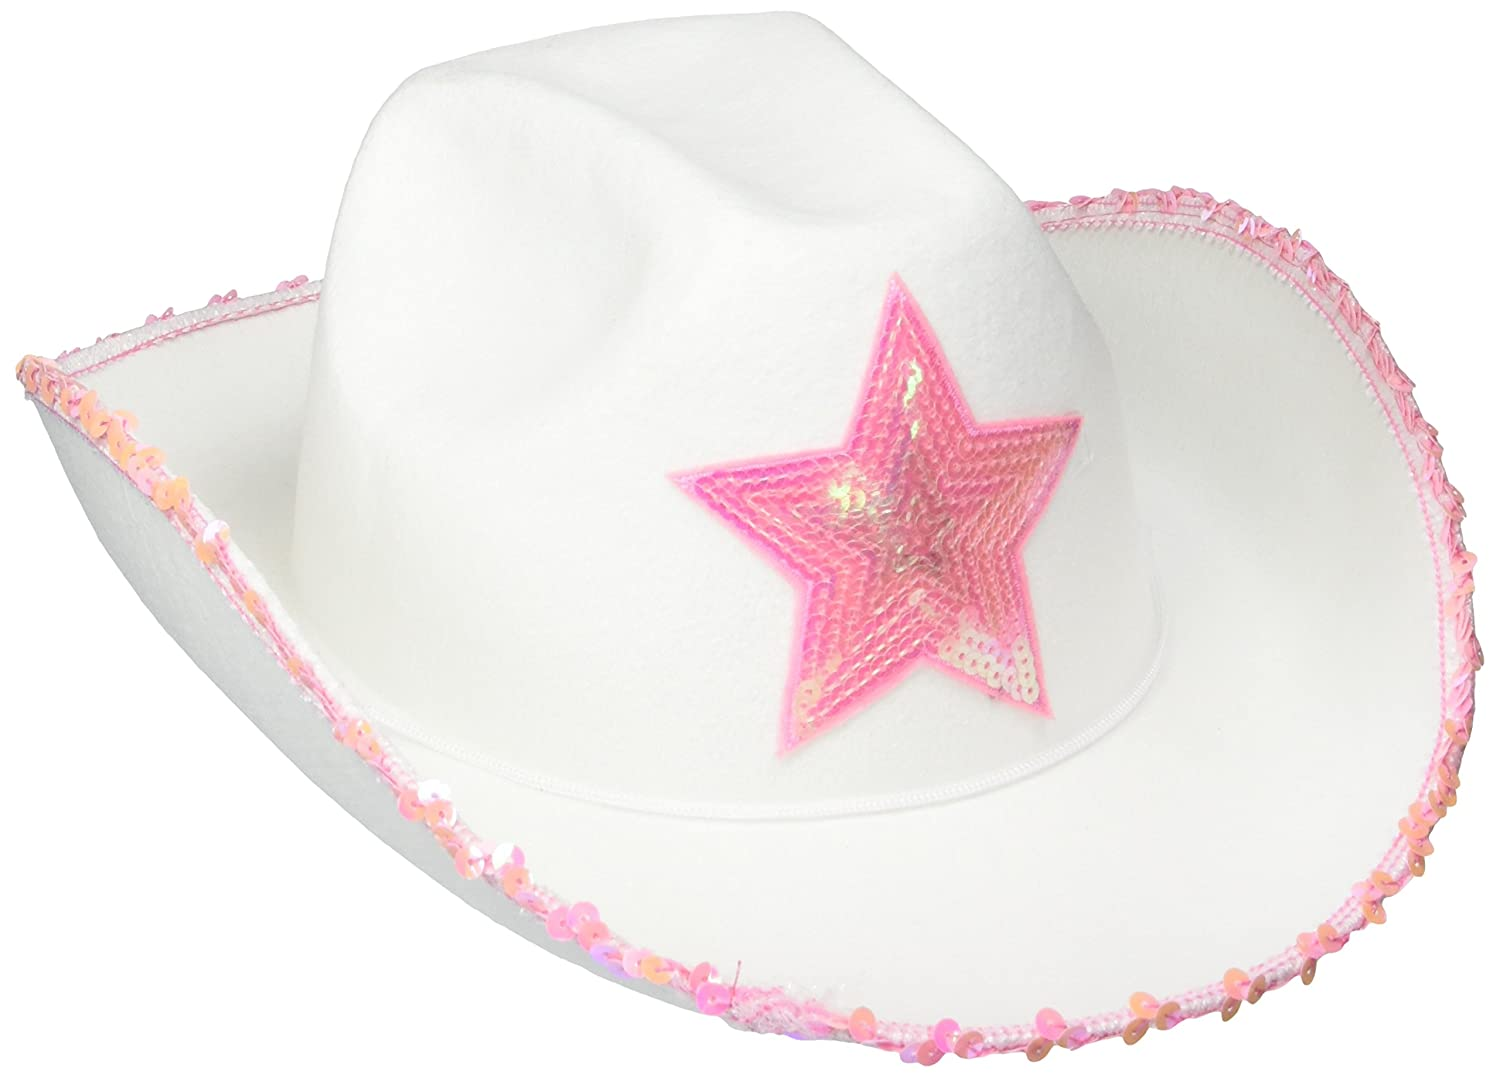 Rhode Island Novelty HACOWWP White Felt Cowgirl Hat with Pink Star RN HACOWWP-1ea